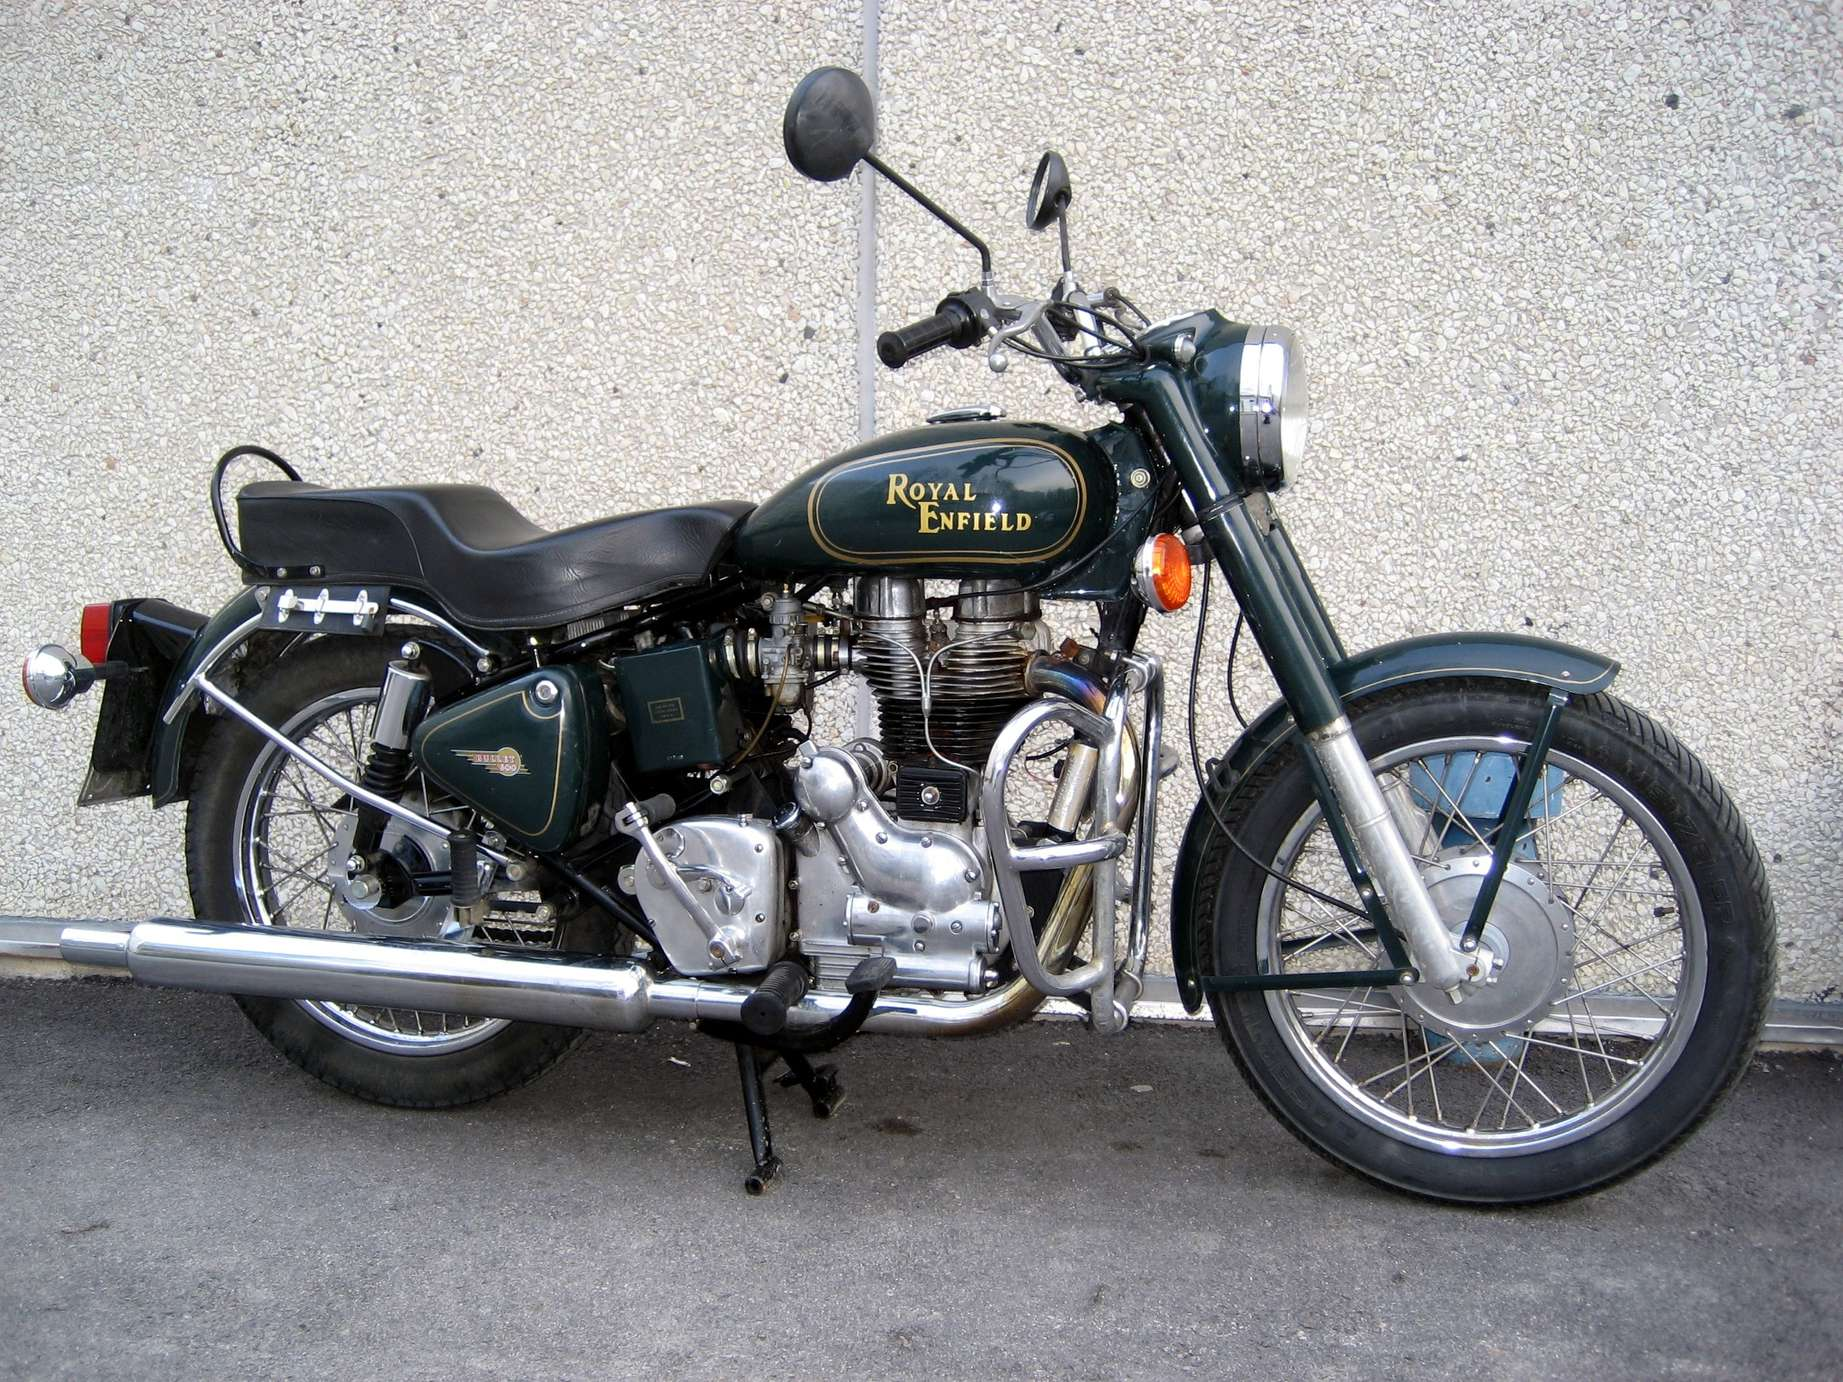 Royal Enfield Bullet #7113547